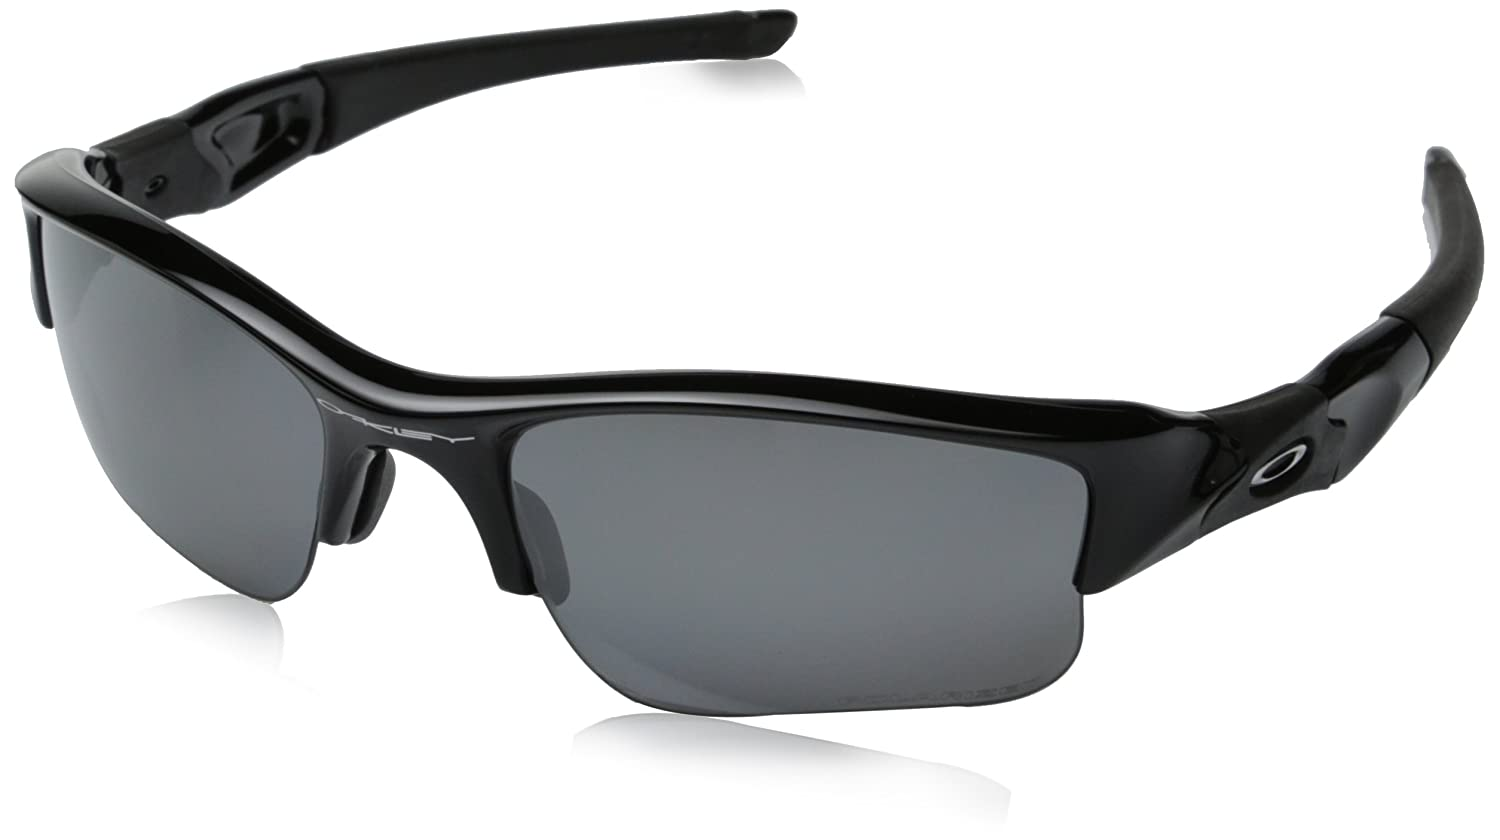 6f868d826f Amazon.com  Oakley Flak Jacket XLJ Adult Polarized Sport Outdoor  Sunglasses Eyewear - Jet Black Black Iridium One Size Fits All  Oakley   Shoes